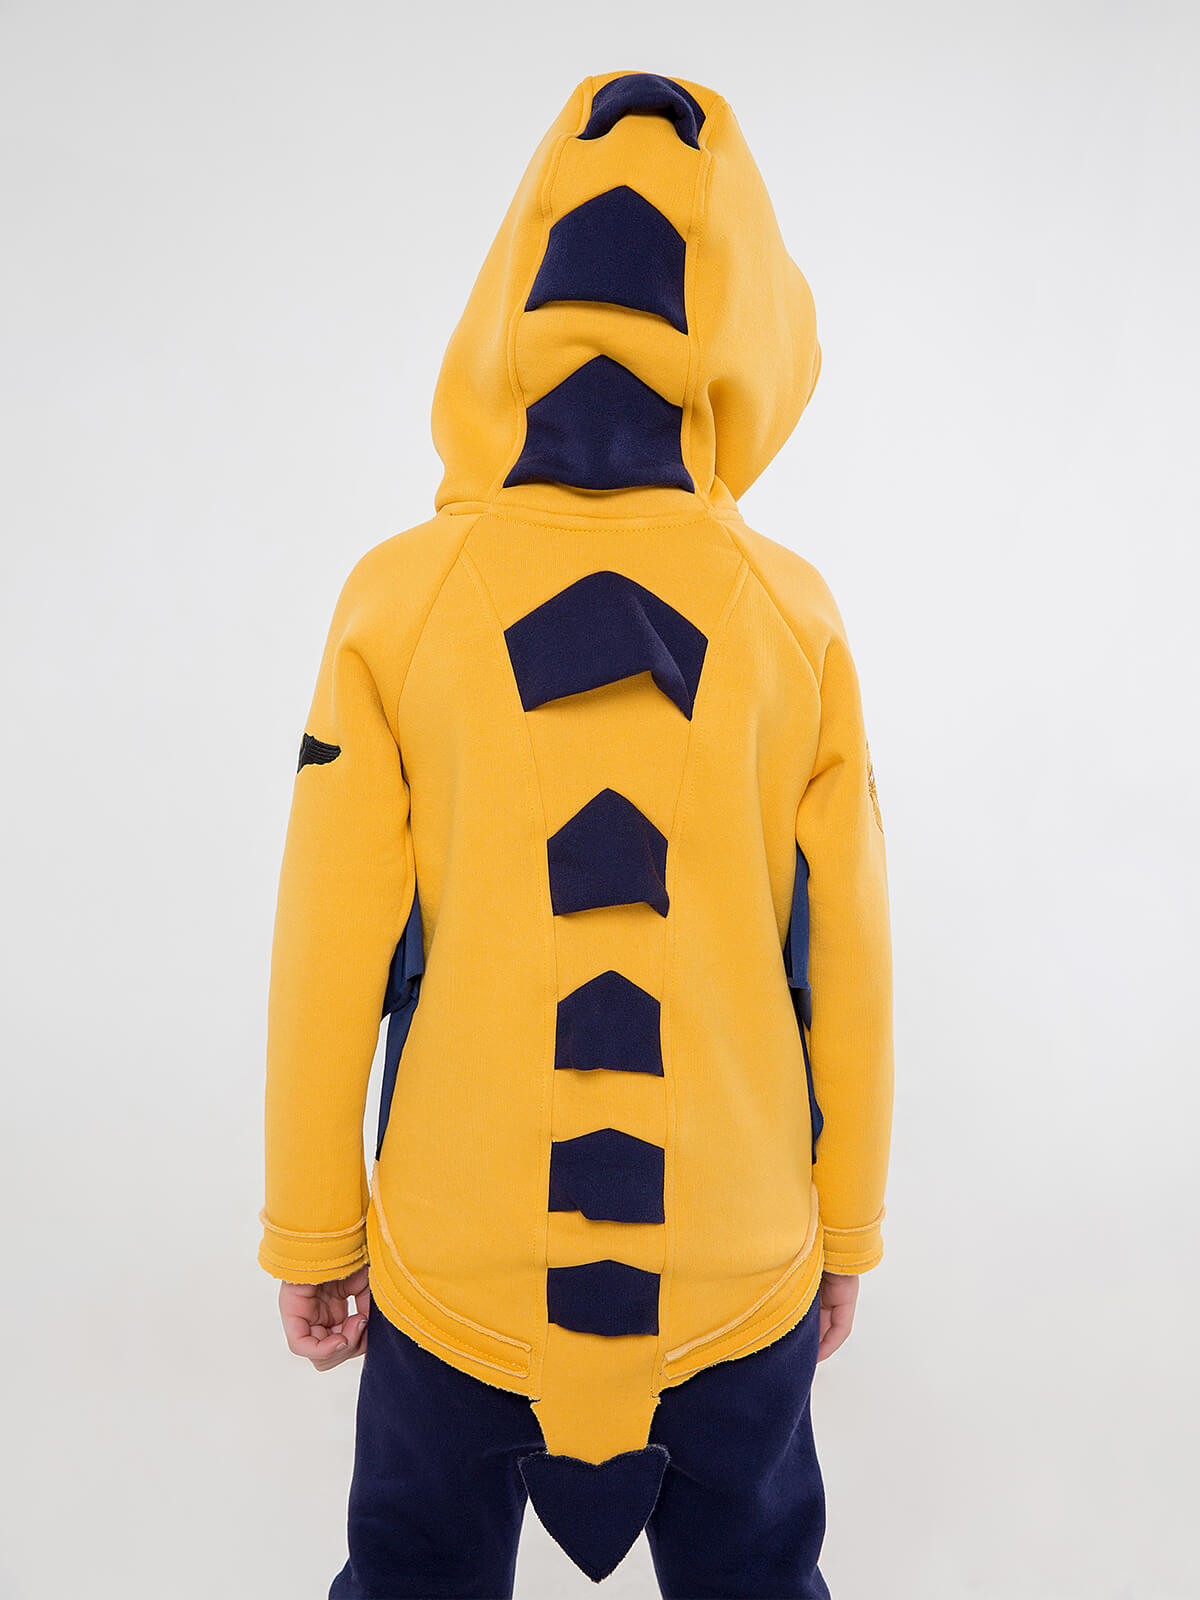 Kids Hoodie Dragon. Color yellow.  Material of the hoodie – three-cord thread fabric: 77% cotton, 23% polyester.